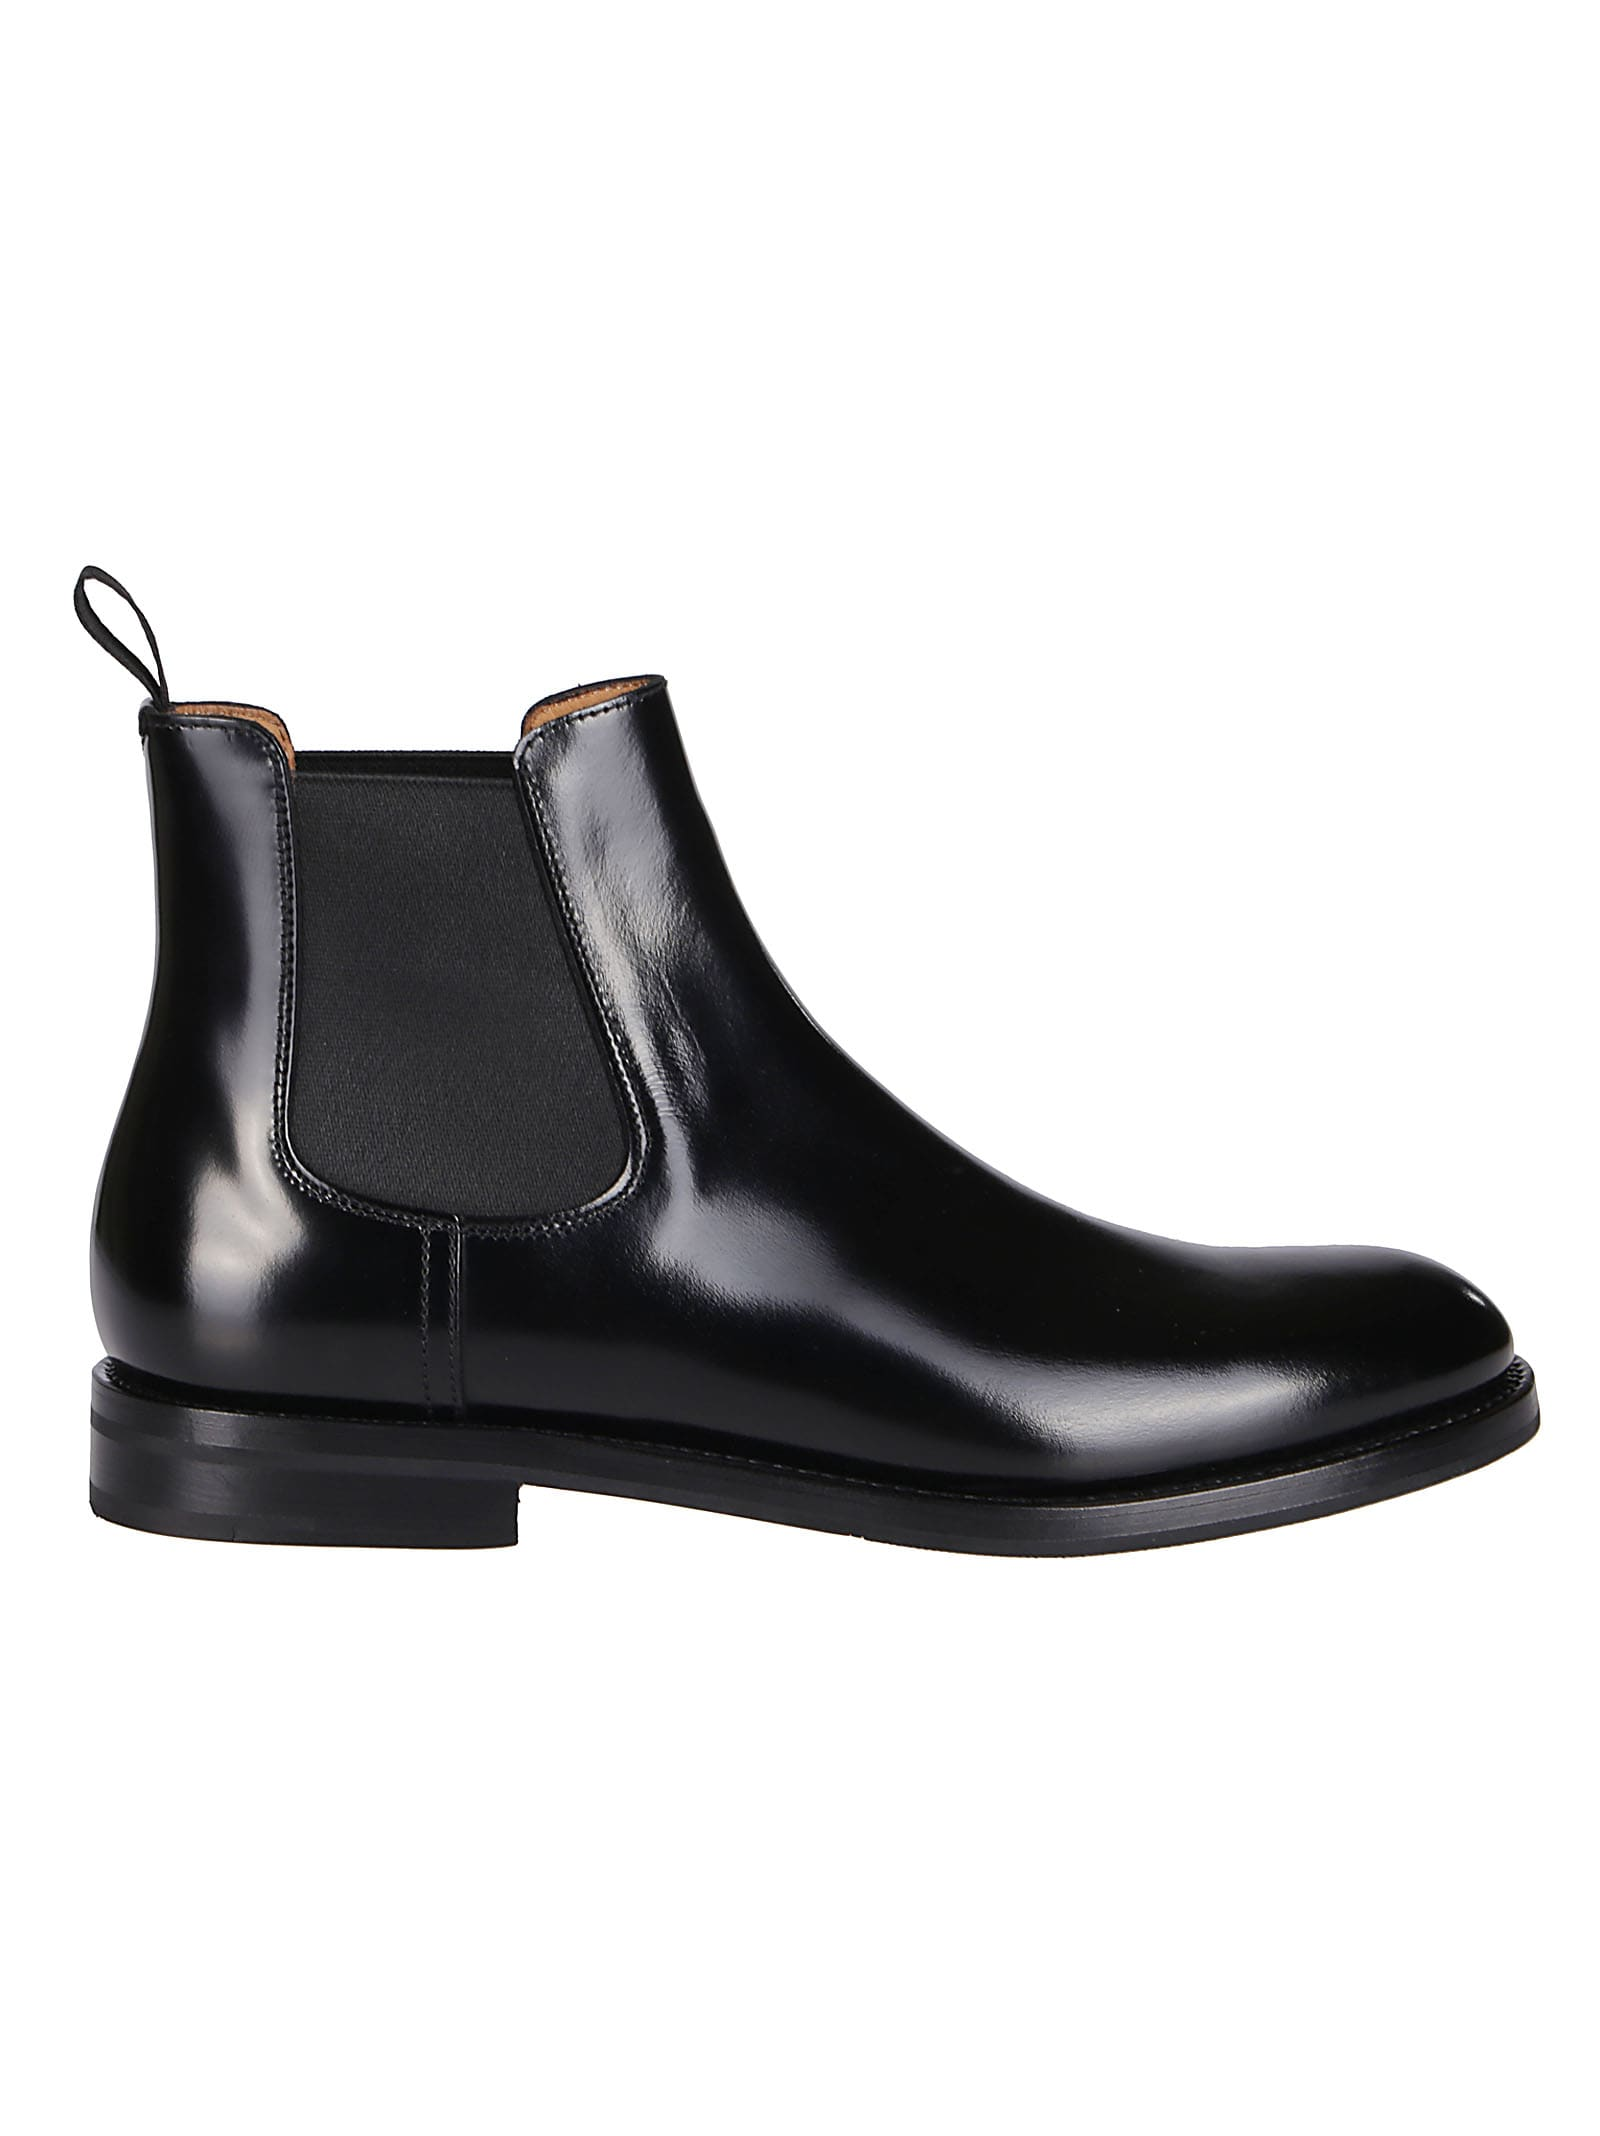 CHURCH'S BLACK LEATHER MONMOUTH CHELSEA BOOTS